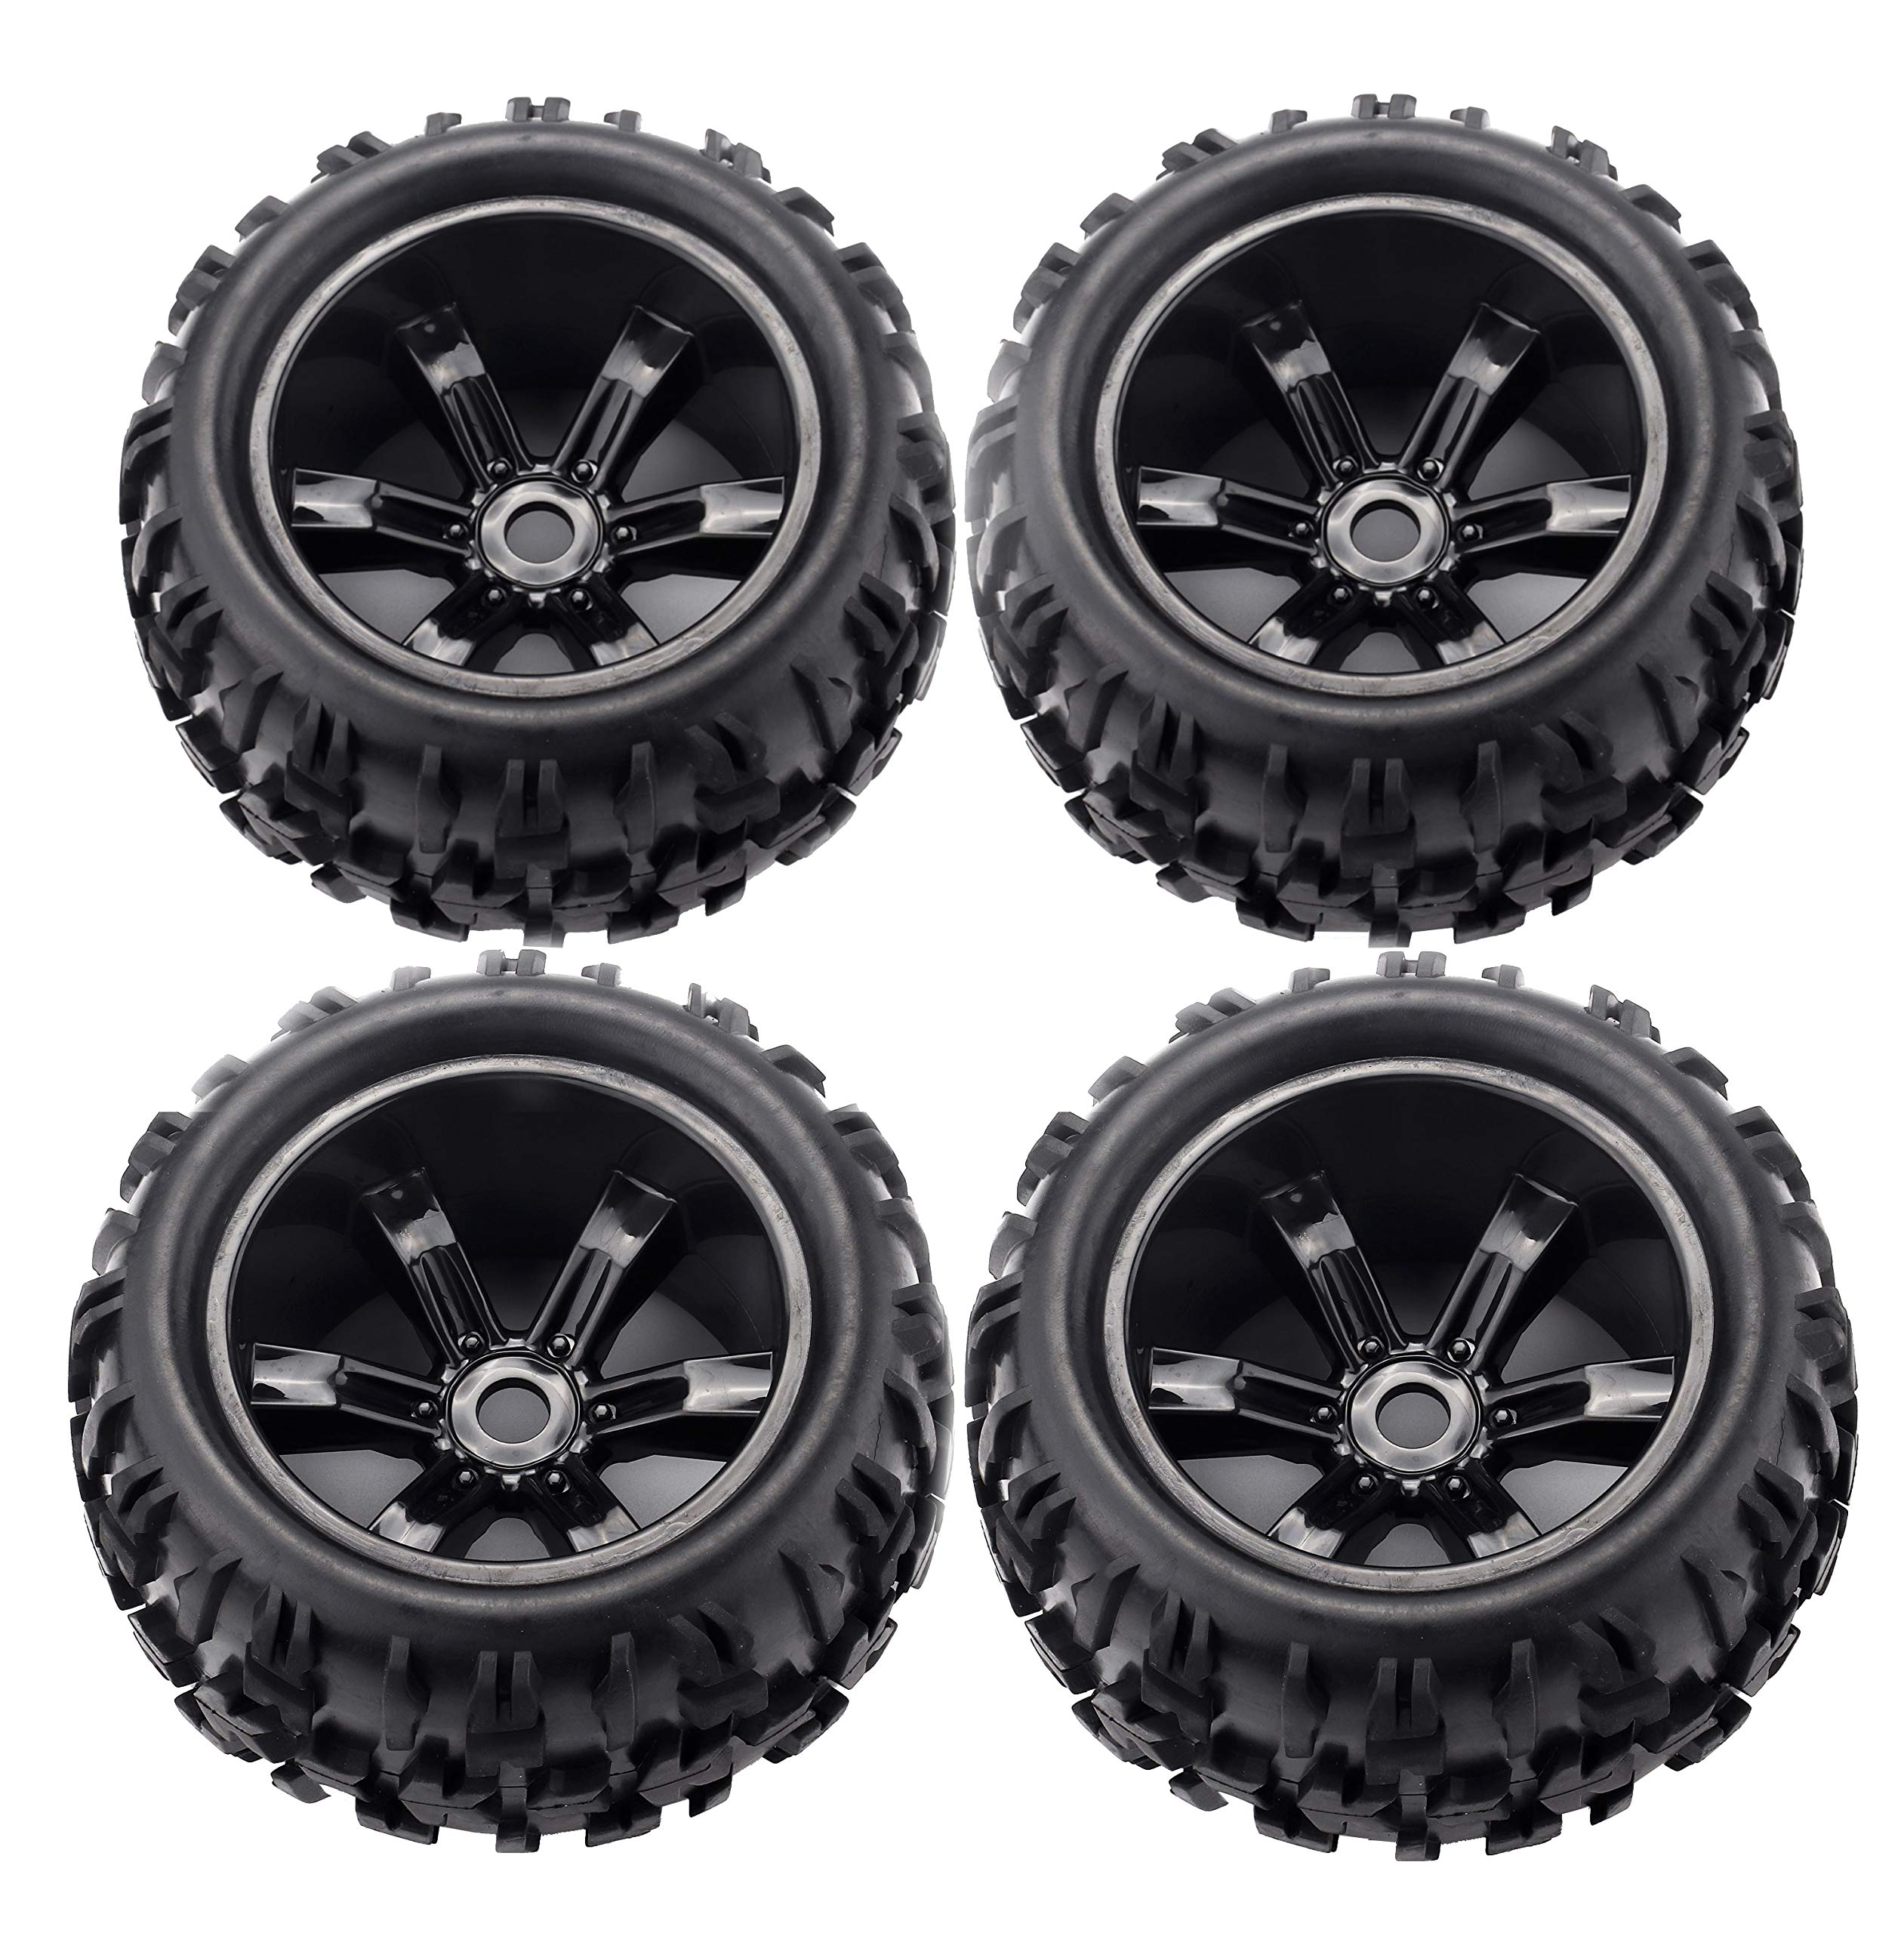 RC Station 17mm Hex RC Wheels and Tires 1/8 Scale RC Monster